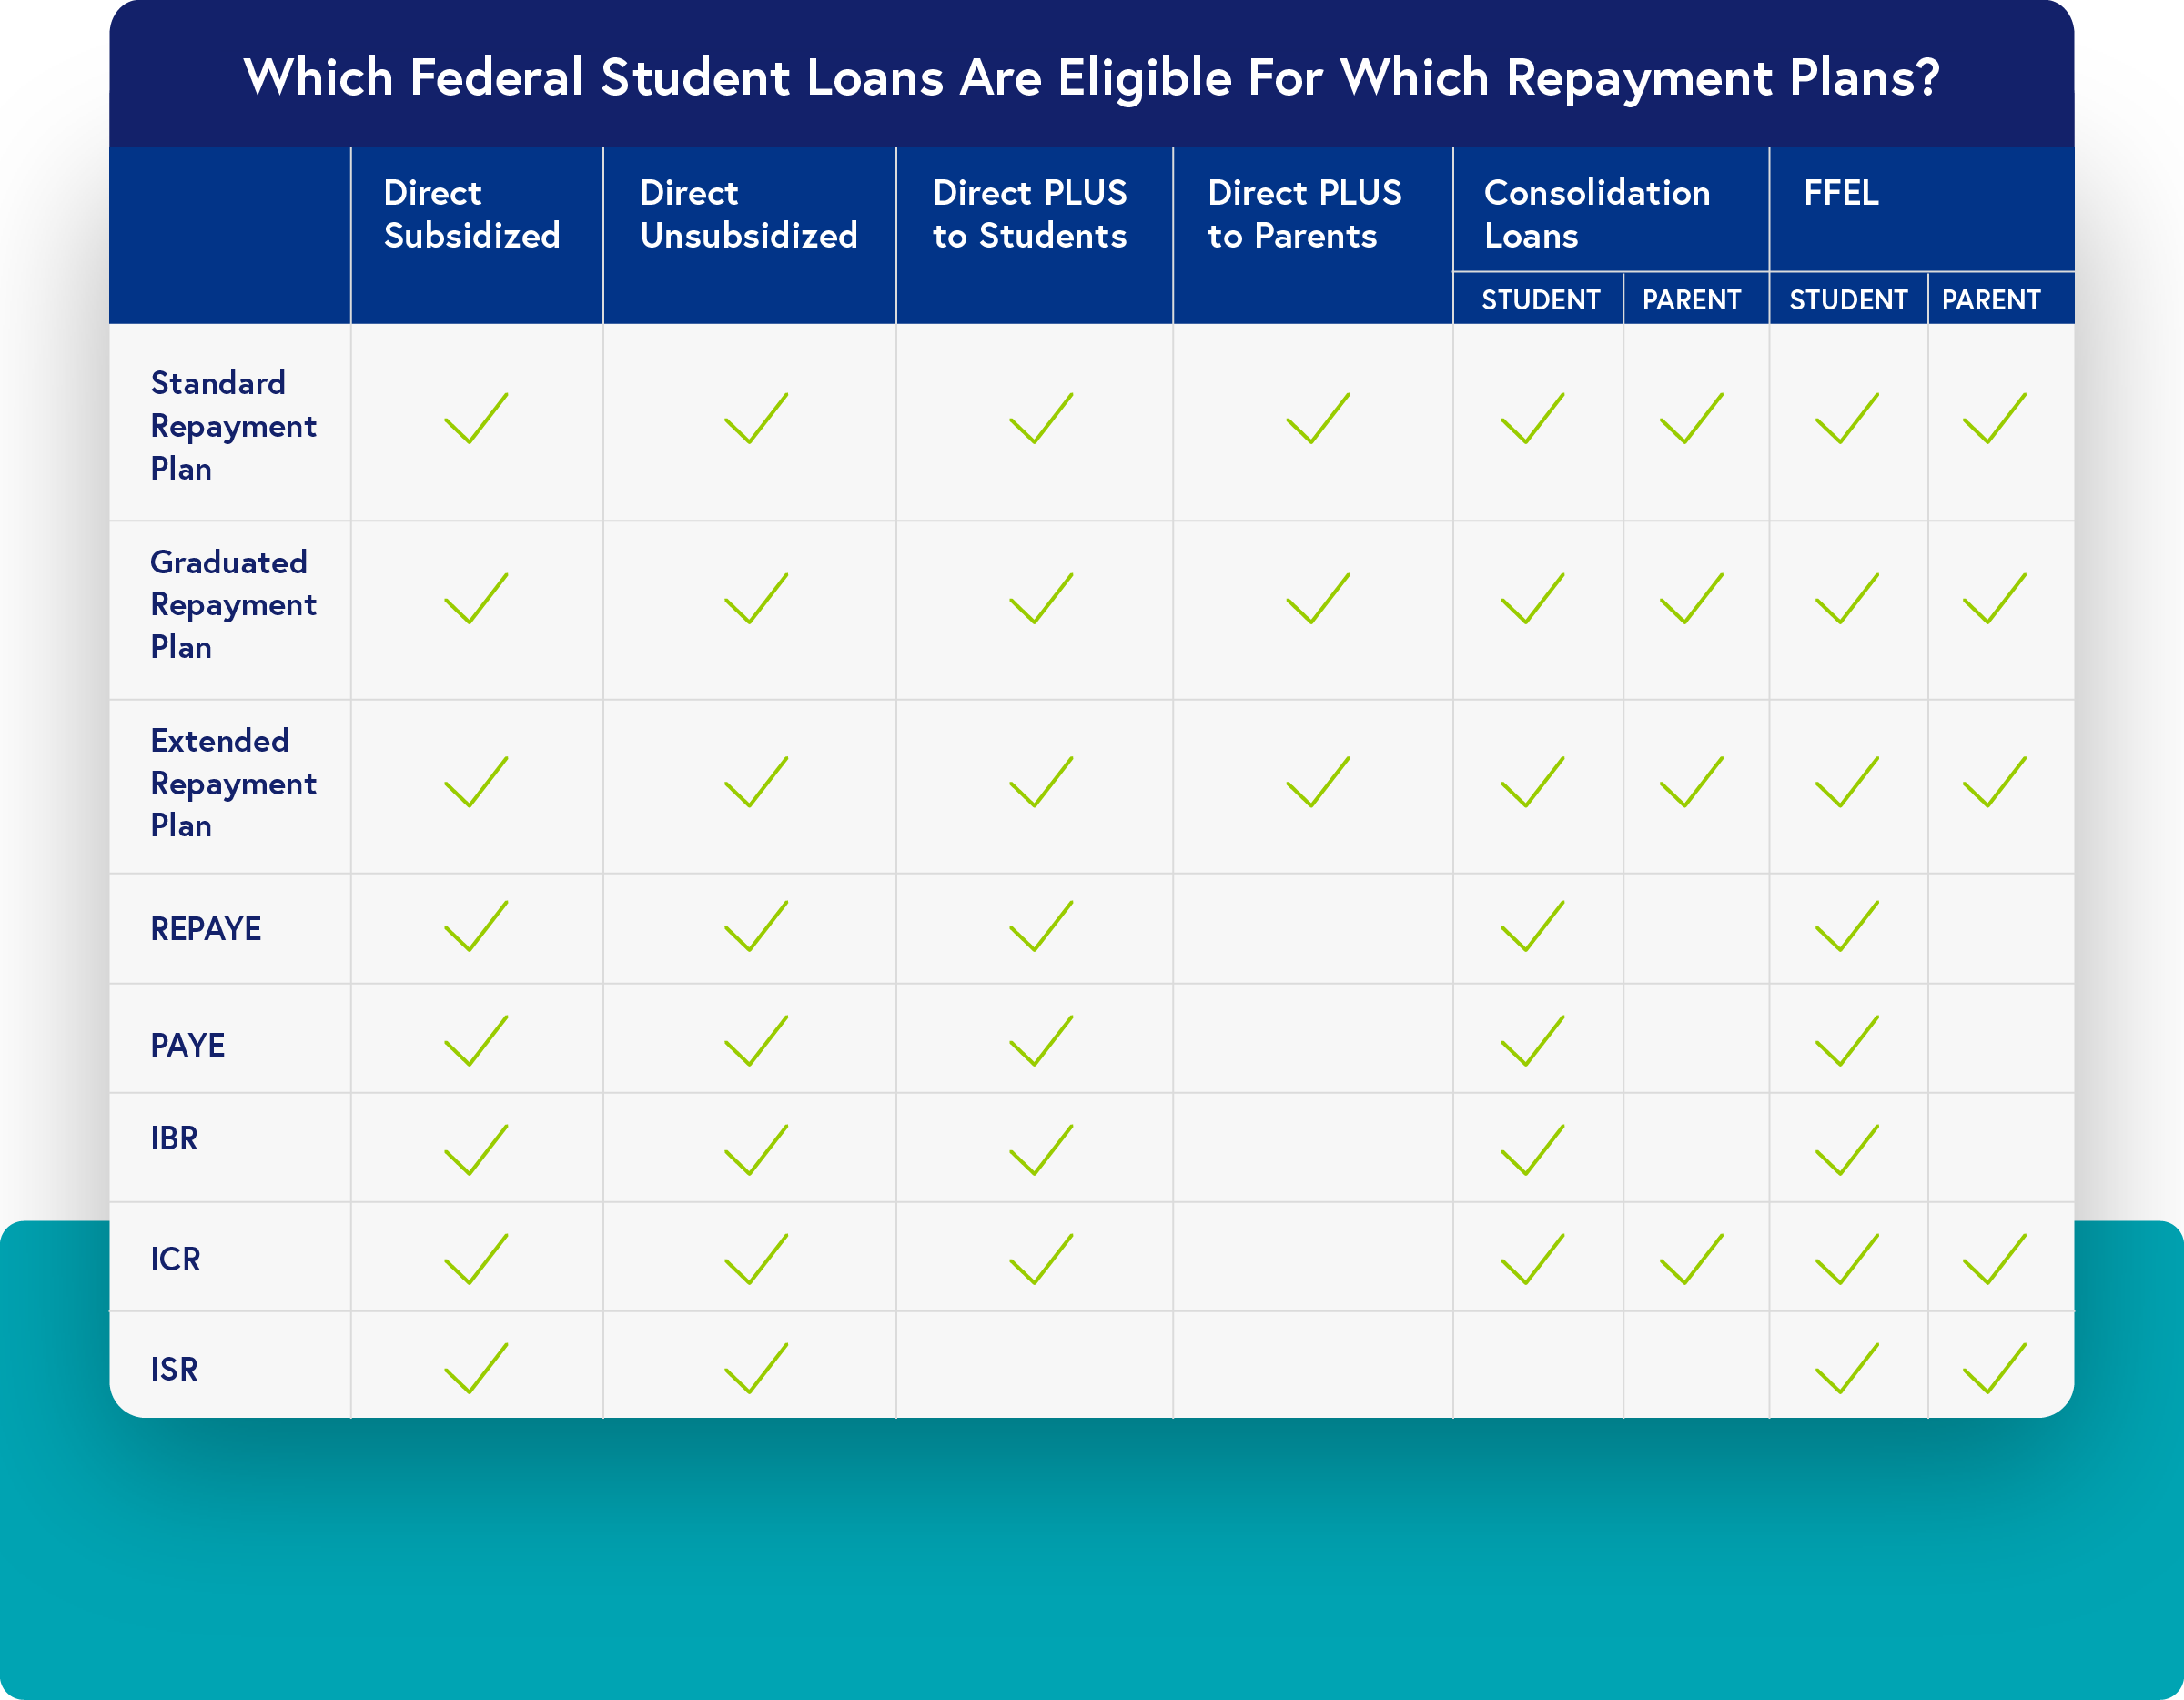 Which Federal Student Loans are Eligible for which Repayment Plans